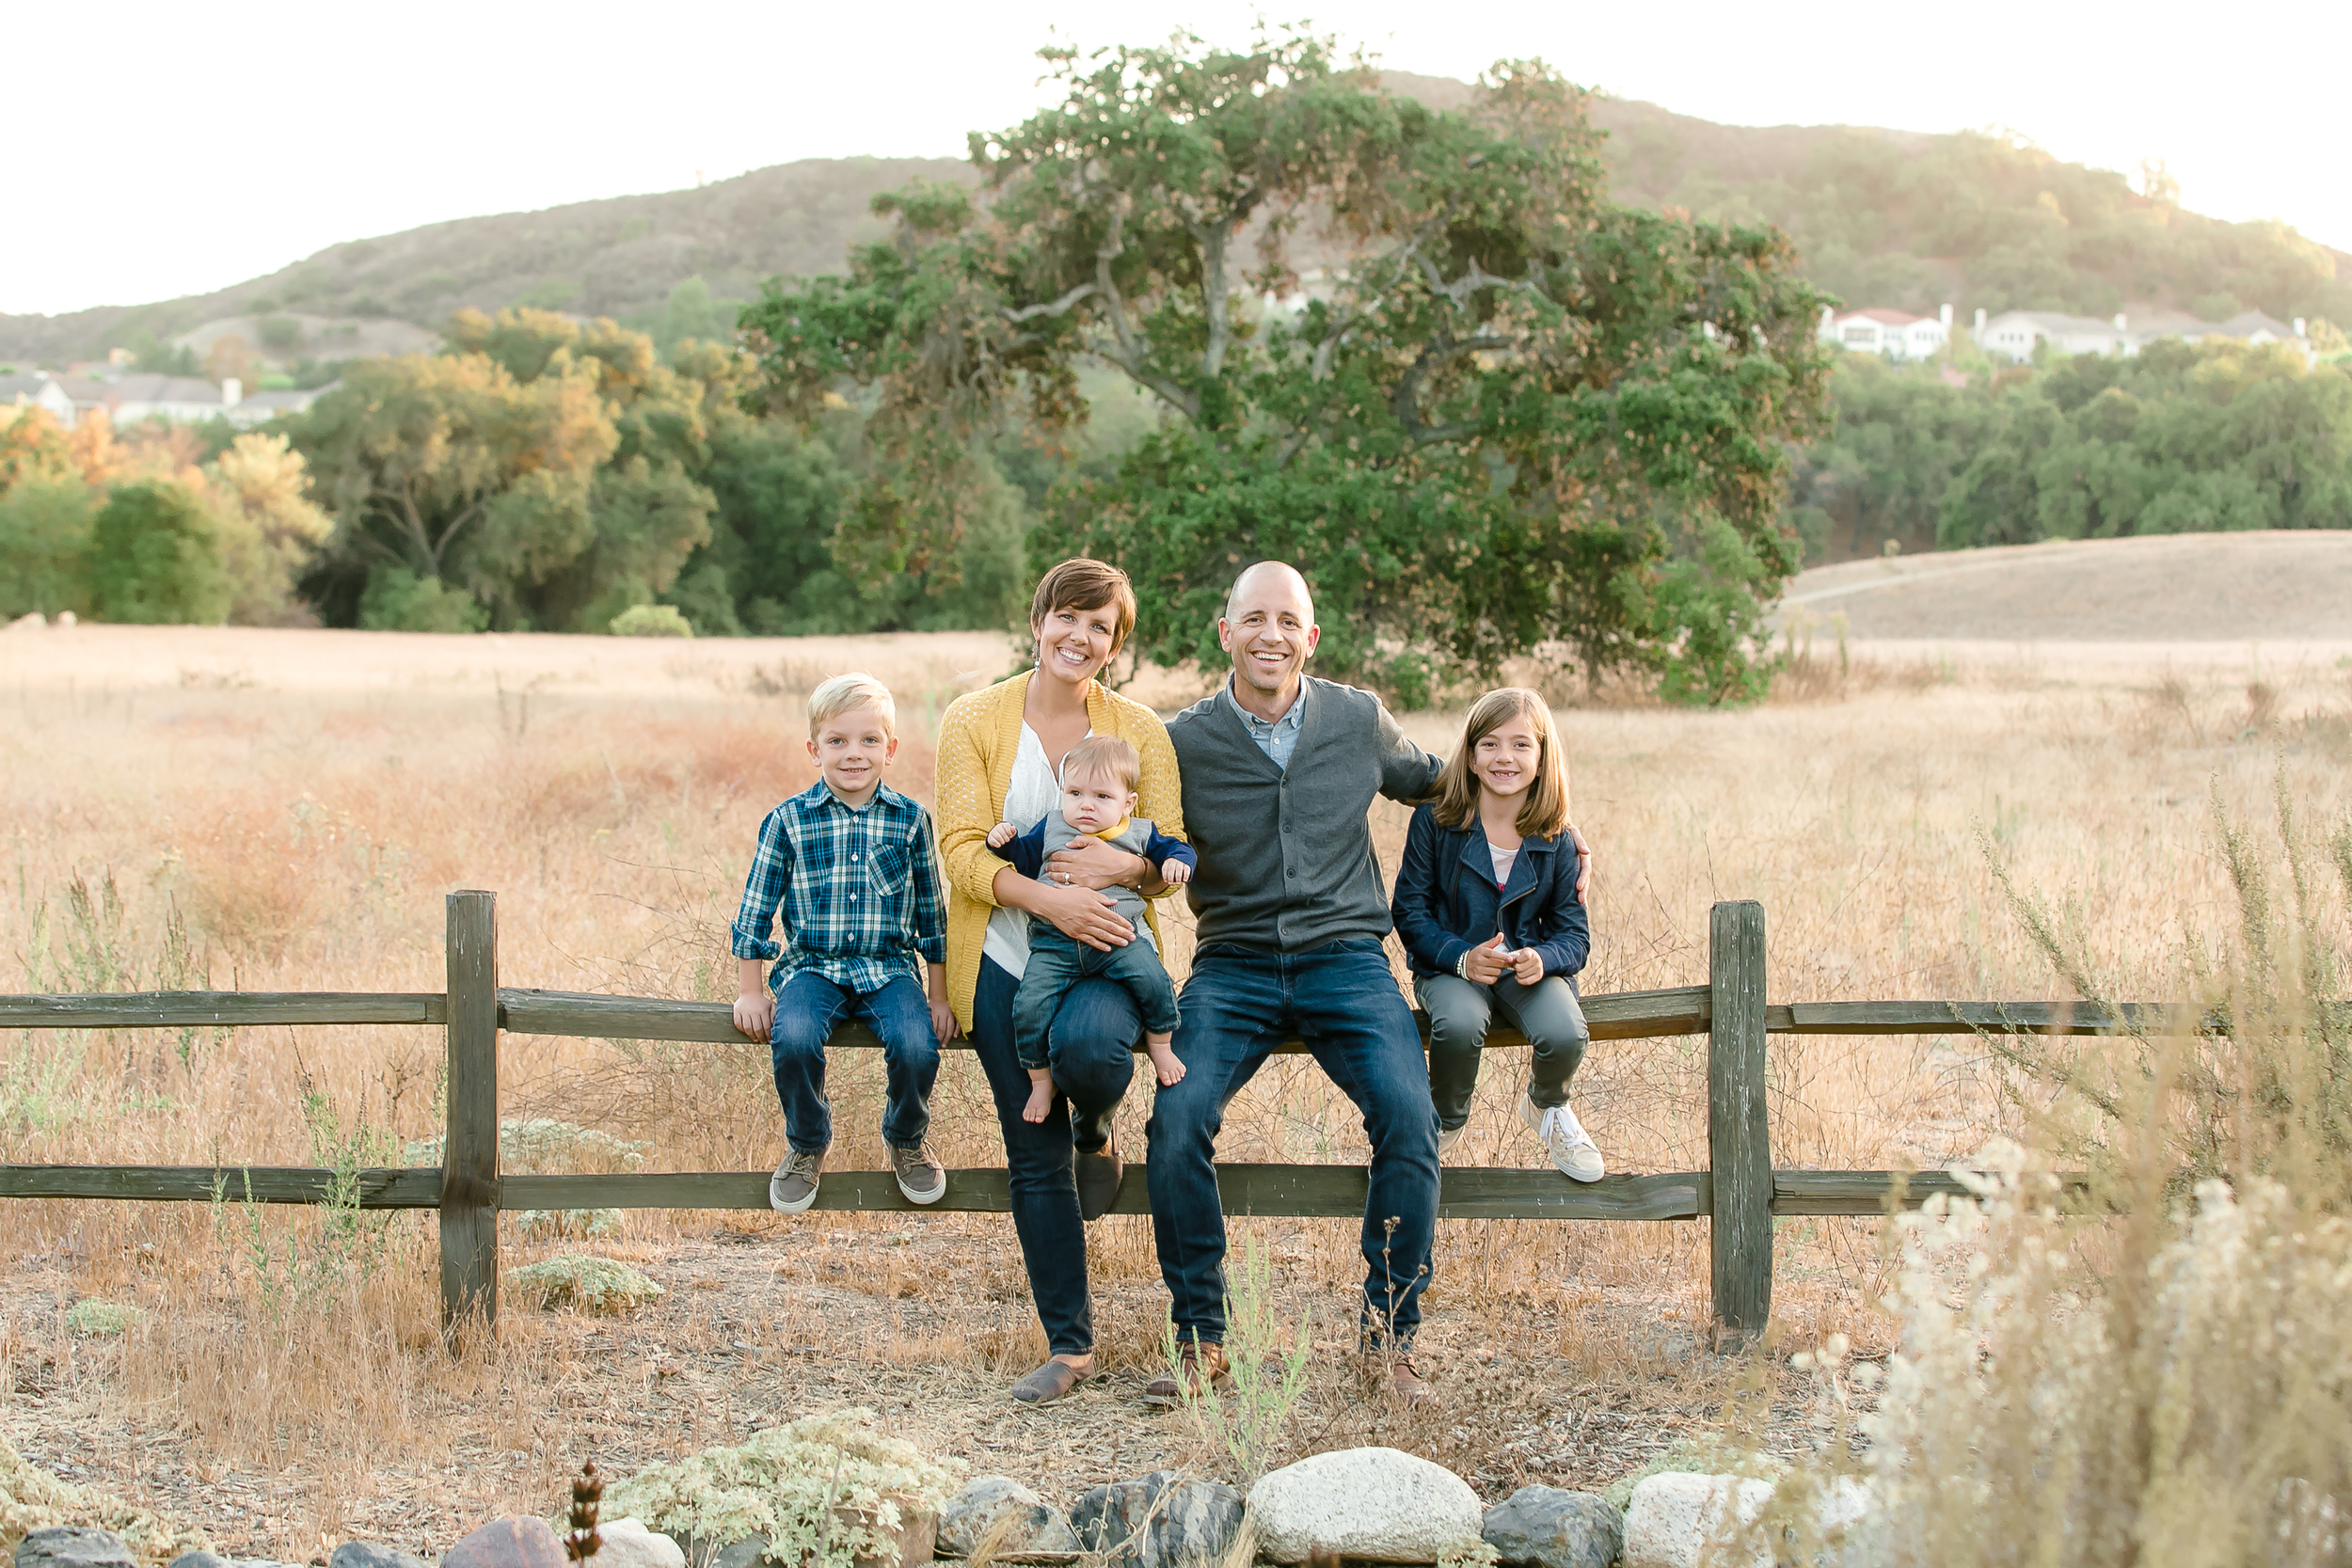 Saddleback Church, Pastor's Family, Orange County outdoor family photos, OC Family,  Trabuco Canyon  Park Photographs, Rancho Santa Margarita Family Portraits, Family of 5, Love, God is the glory, Mustard, blue, brown, family photo inspiration, awesome family photos, fall family photography